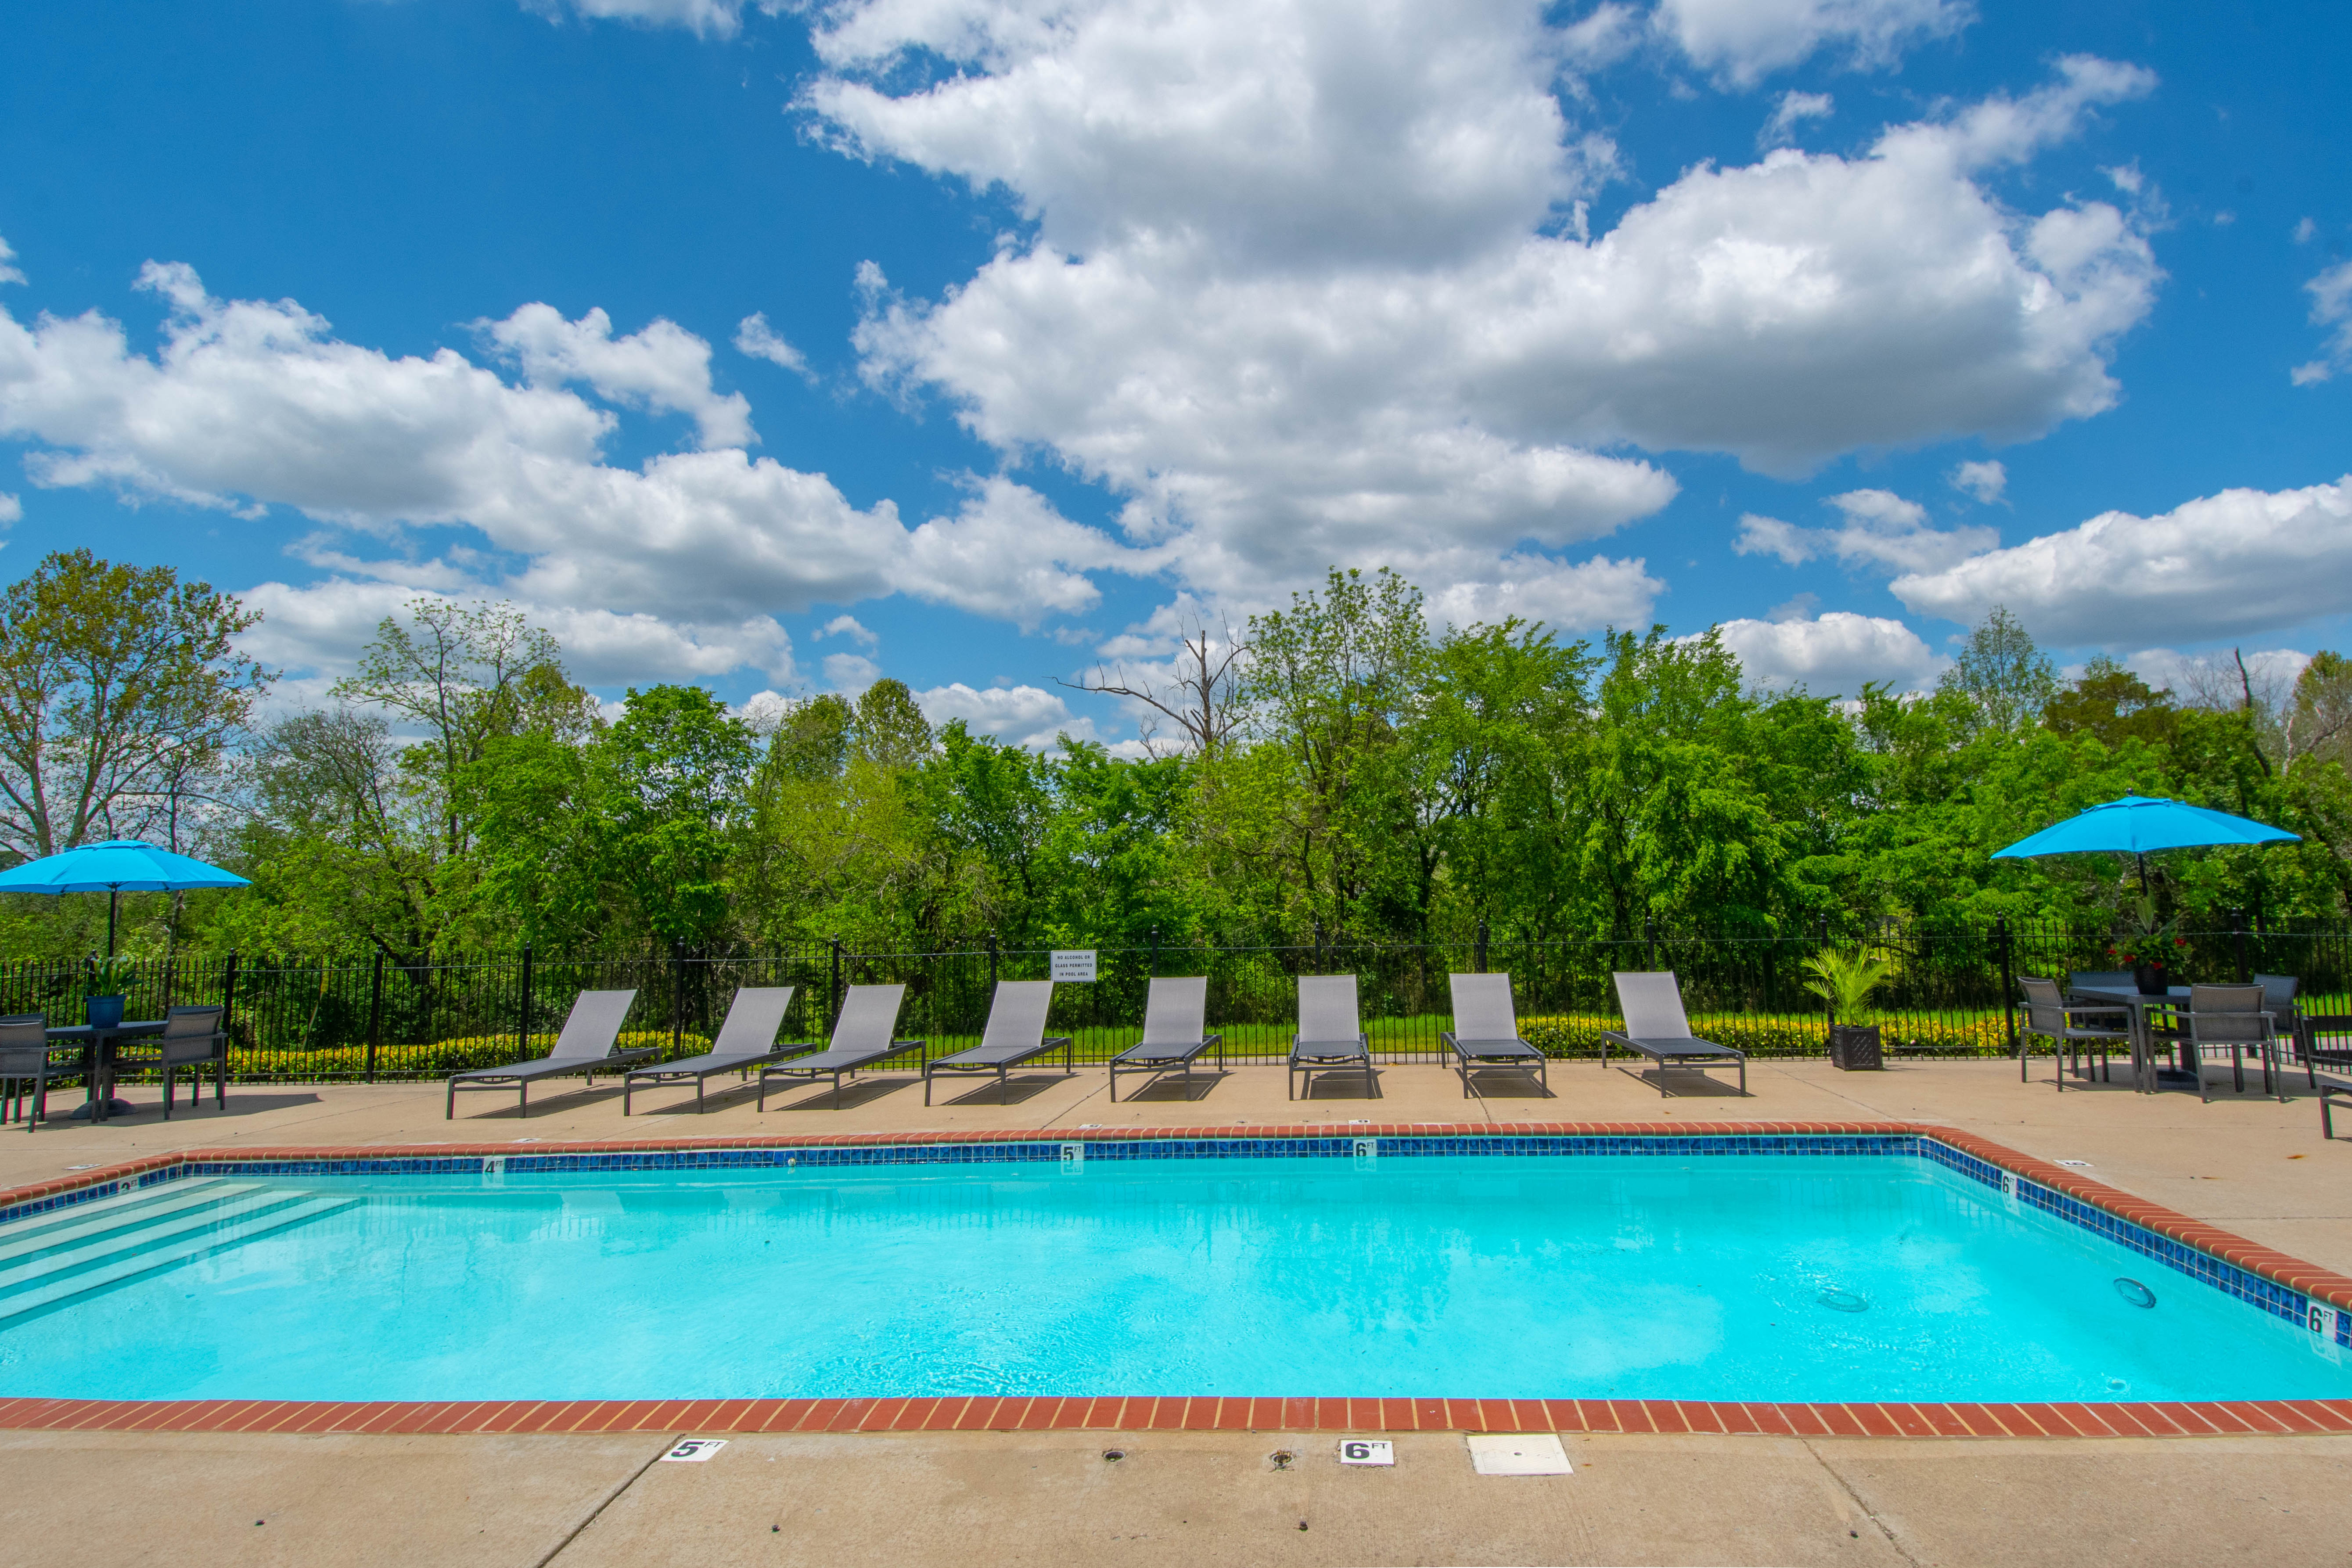 shimmering swimming pool at Chapmans retreat in Spring Hill, Tennessee